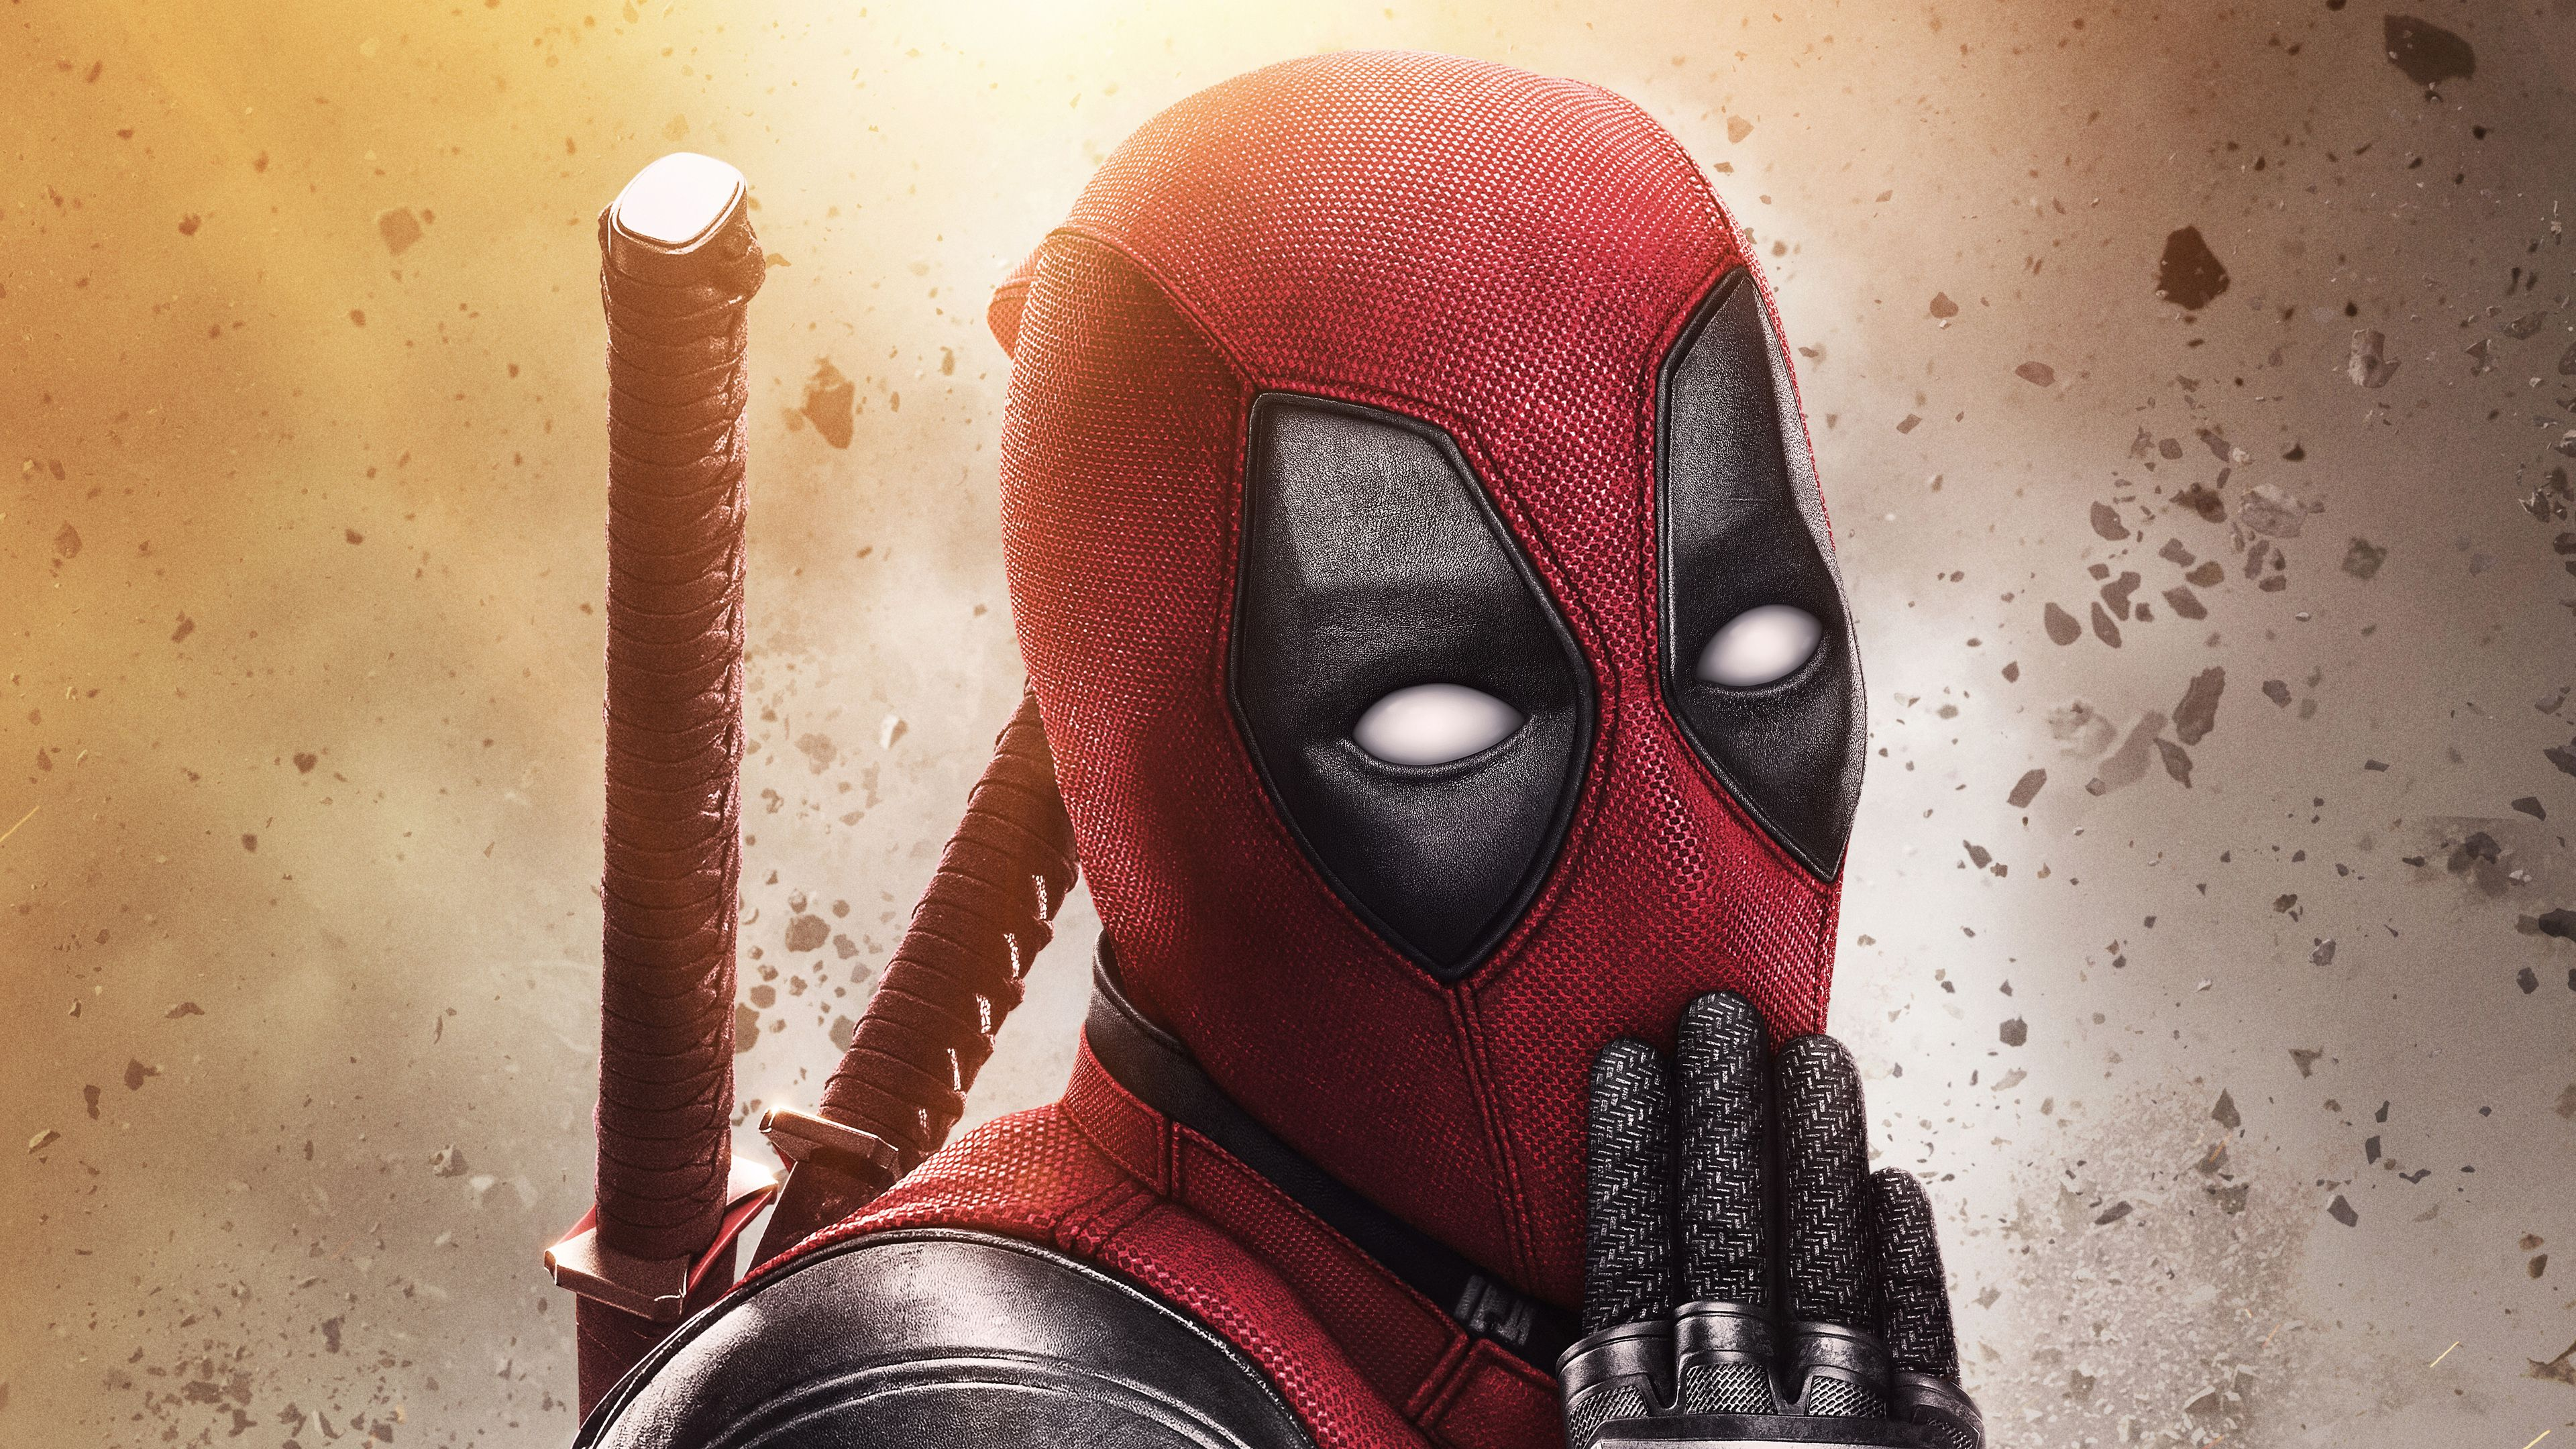 Best Of Deadpool Wallpaper 4k Android Download Images Em 2020